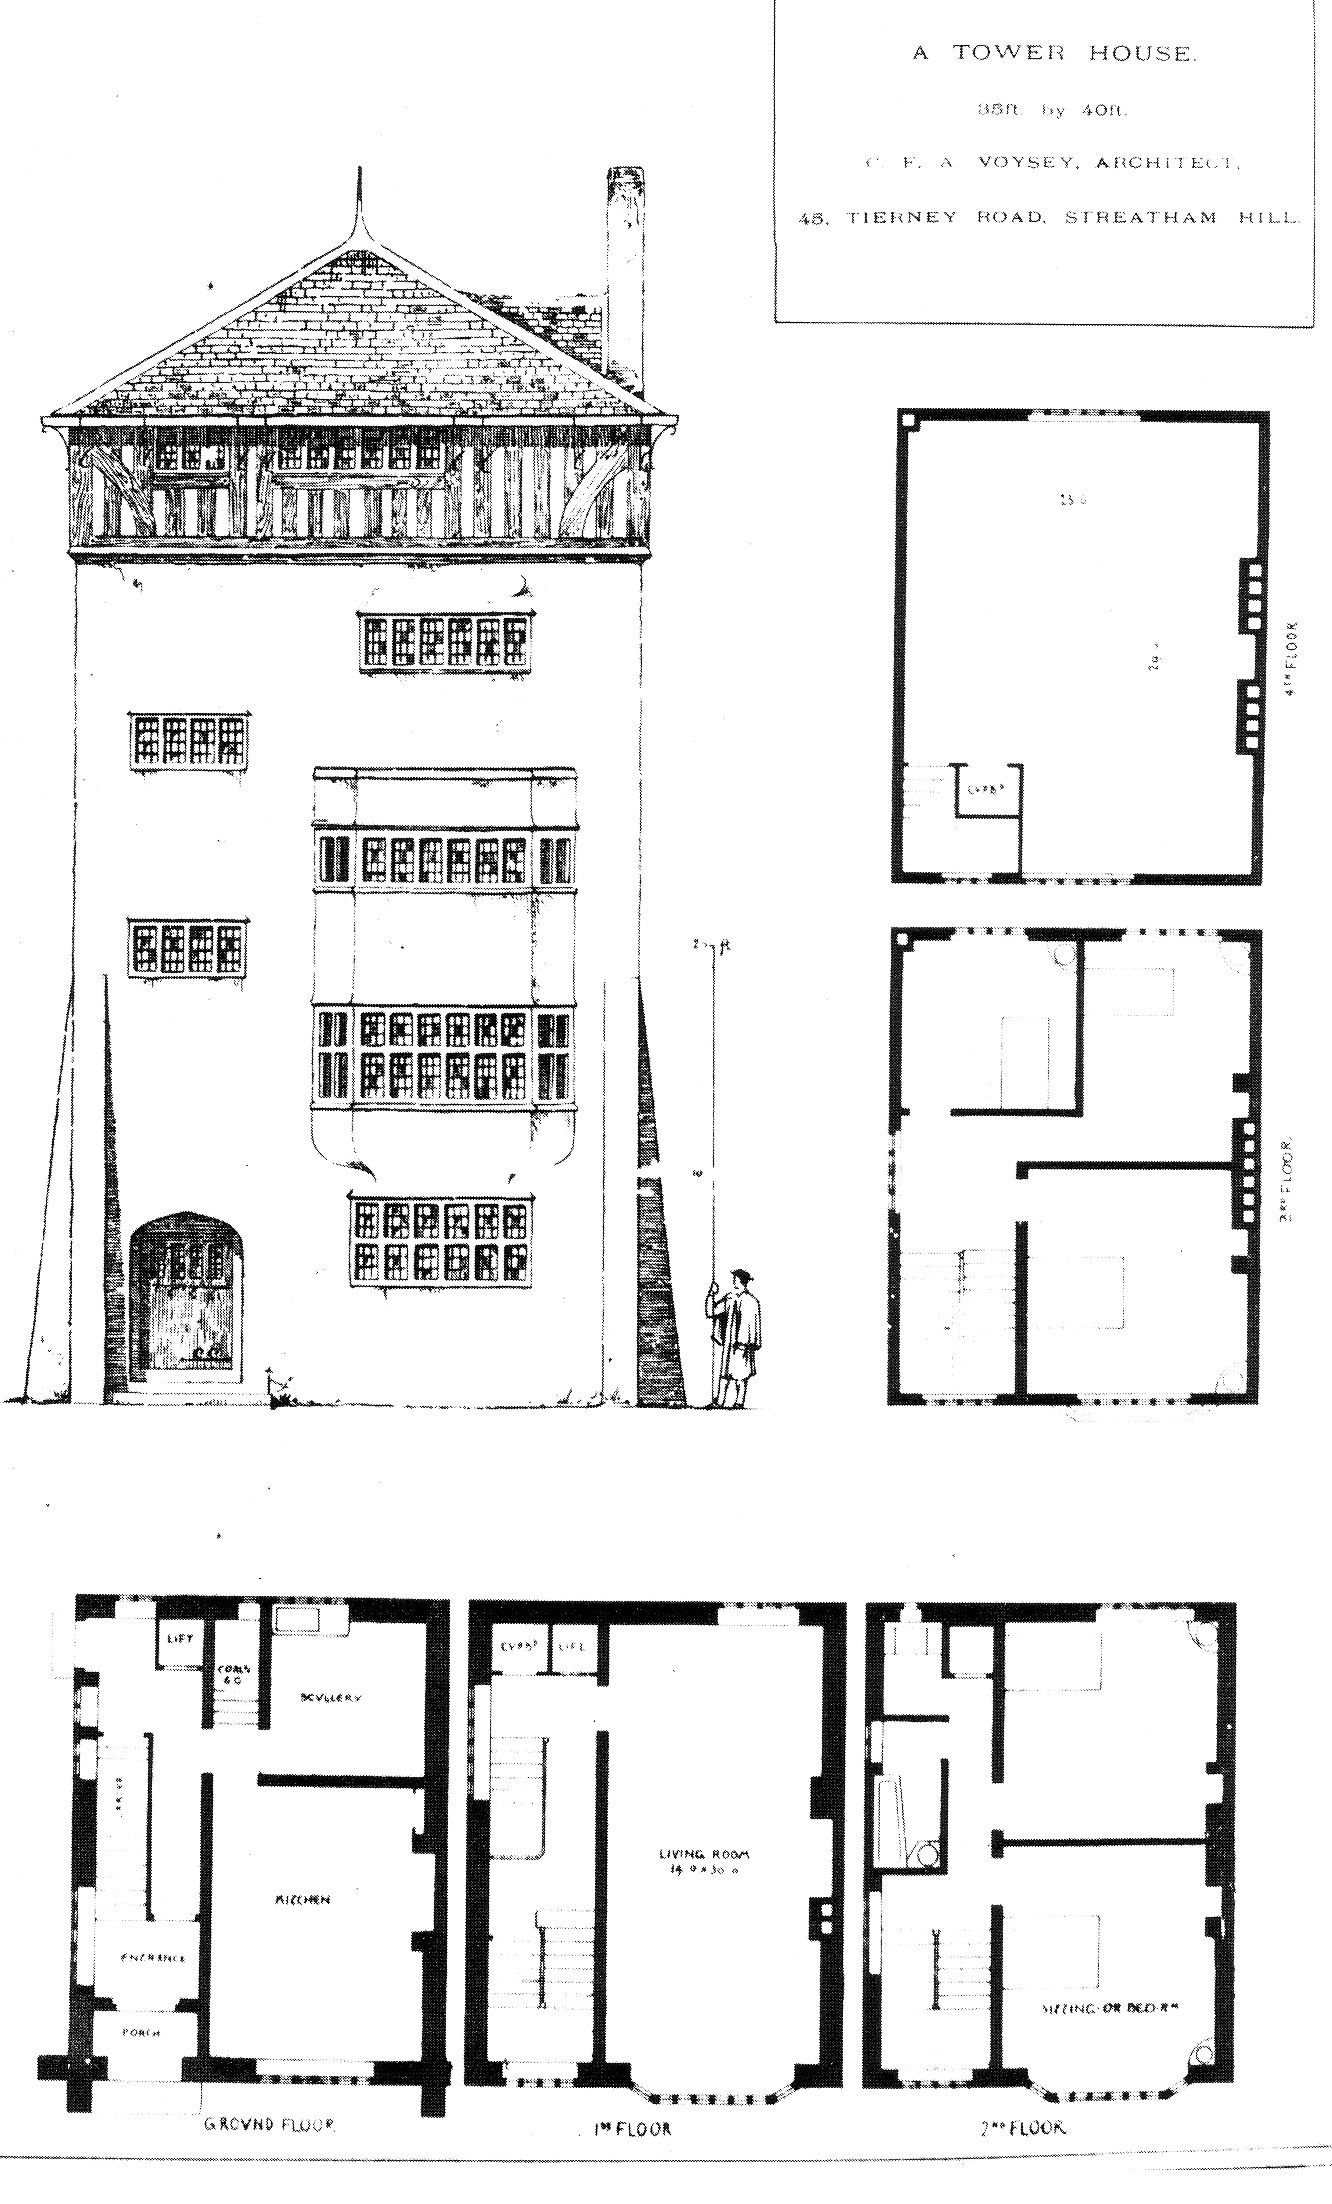 1889 Design For A Tower House Streatham Hill Tower House Vintage House Plans House Plans